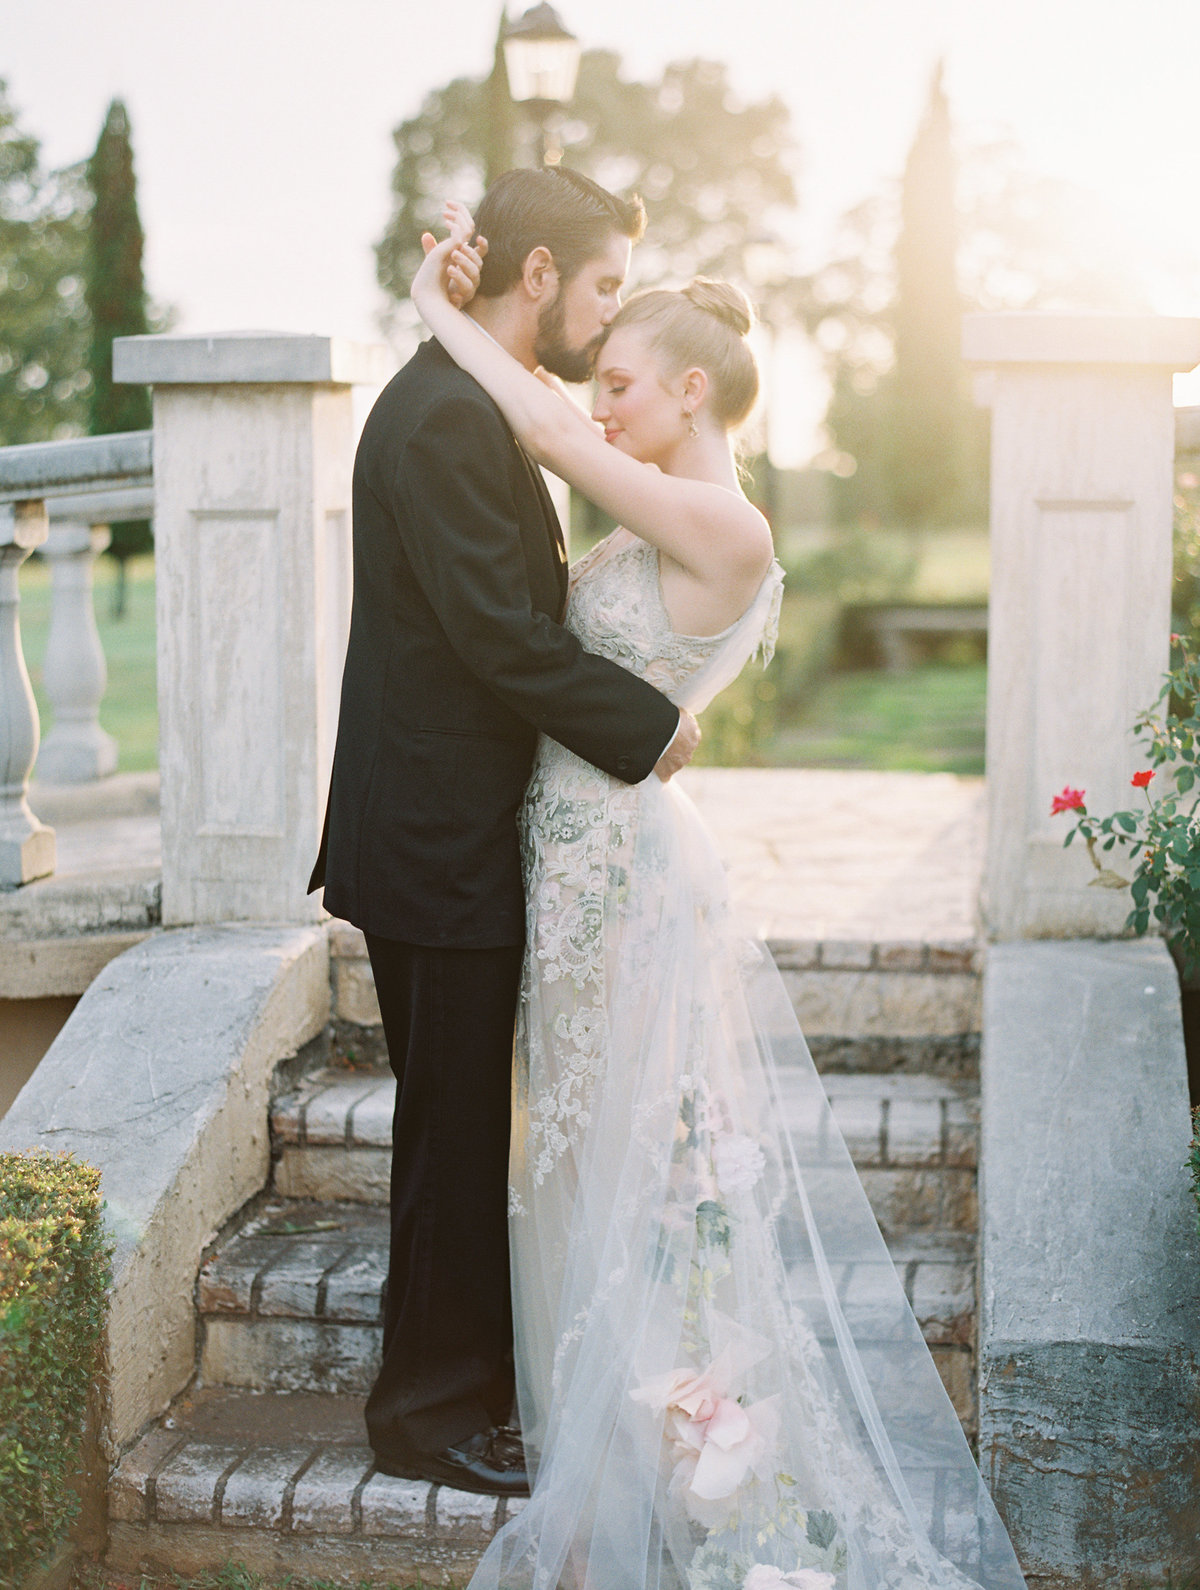 tulsa-oklahoma-wedding-photographer-villa-di-felicita-laura-eddy-photography-119